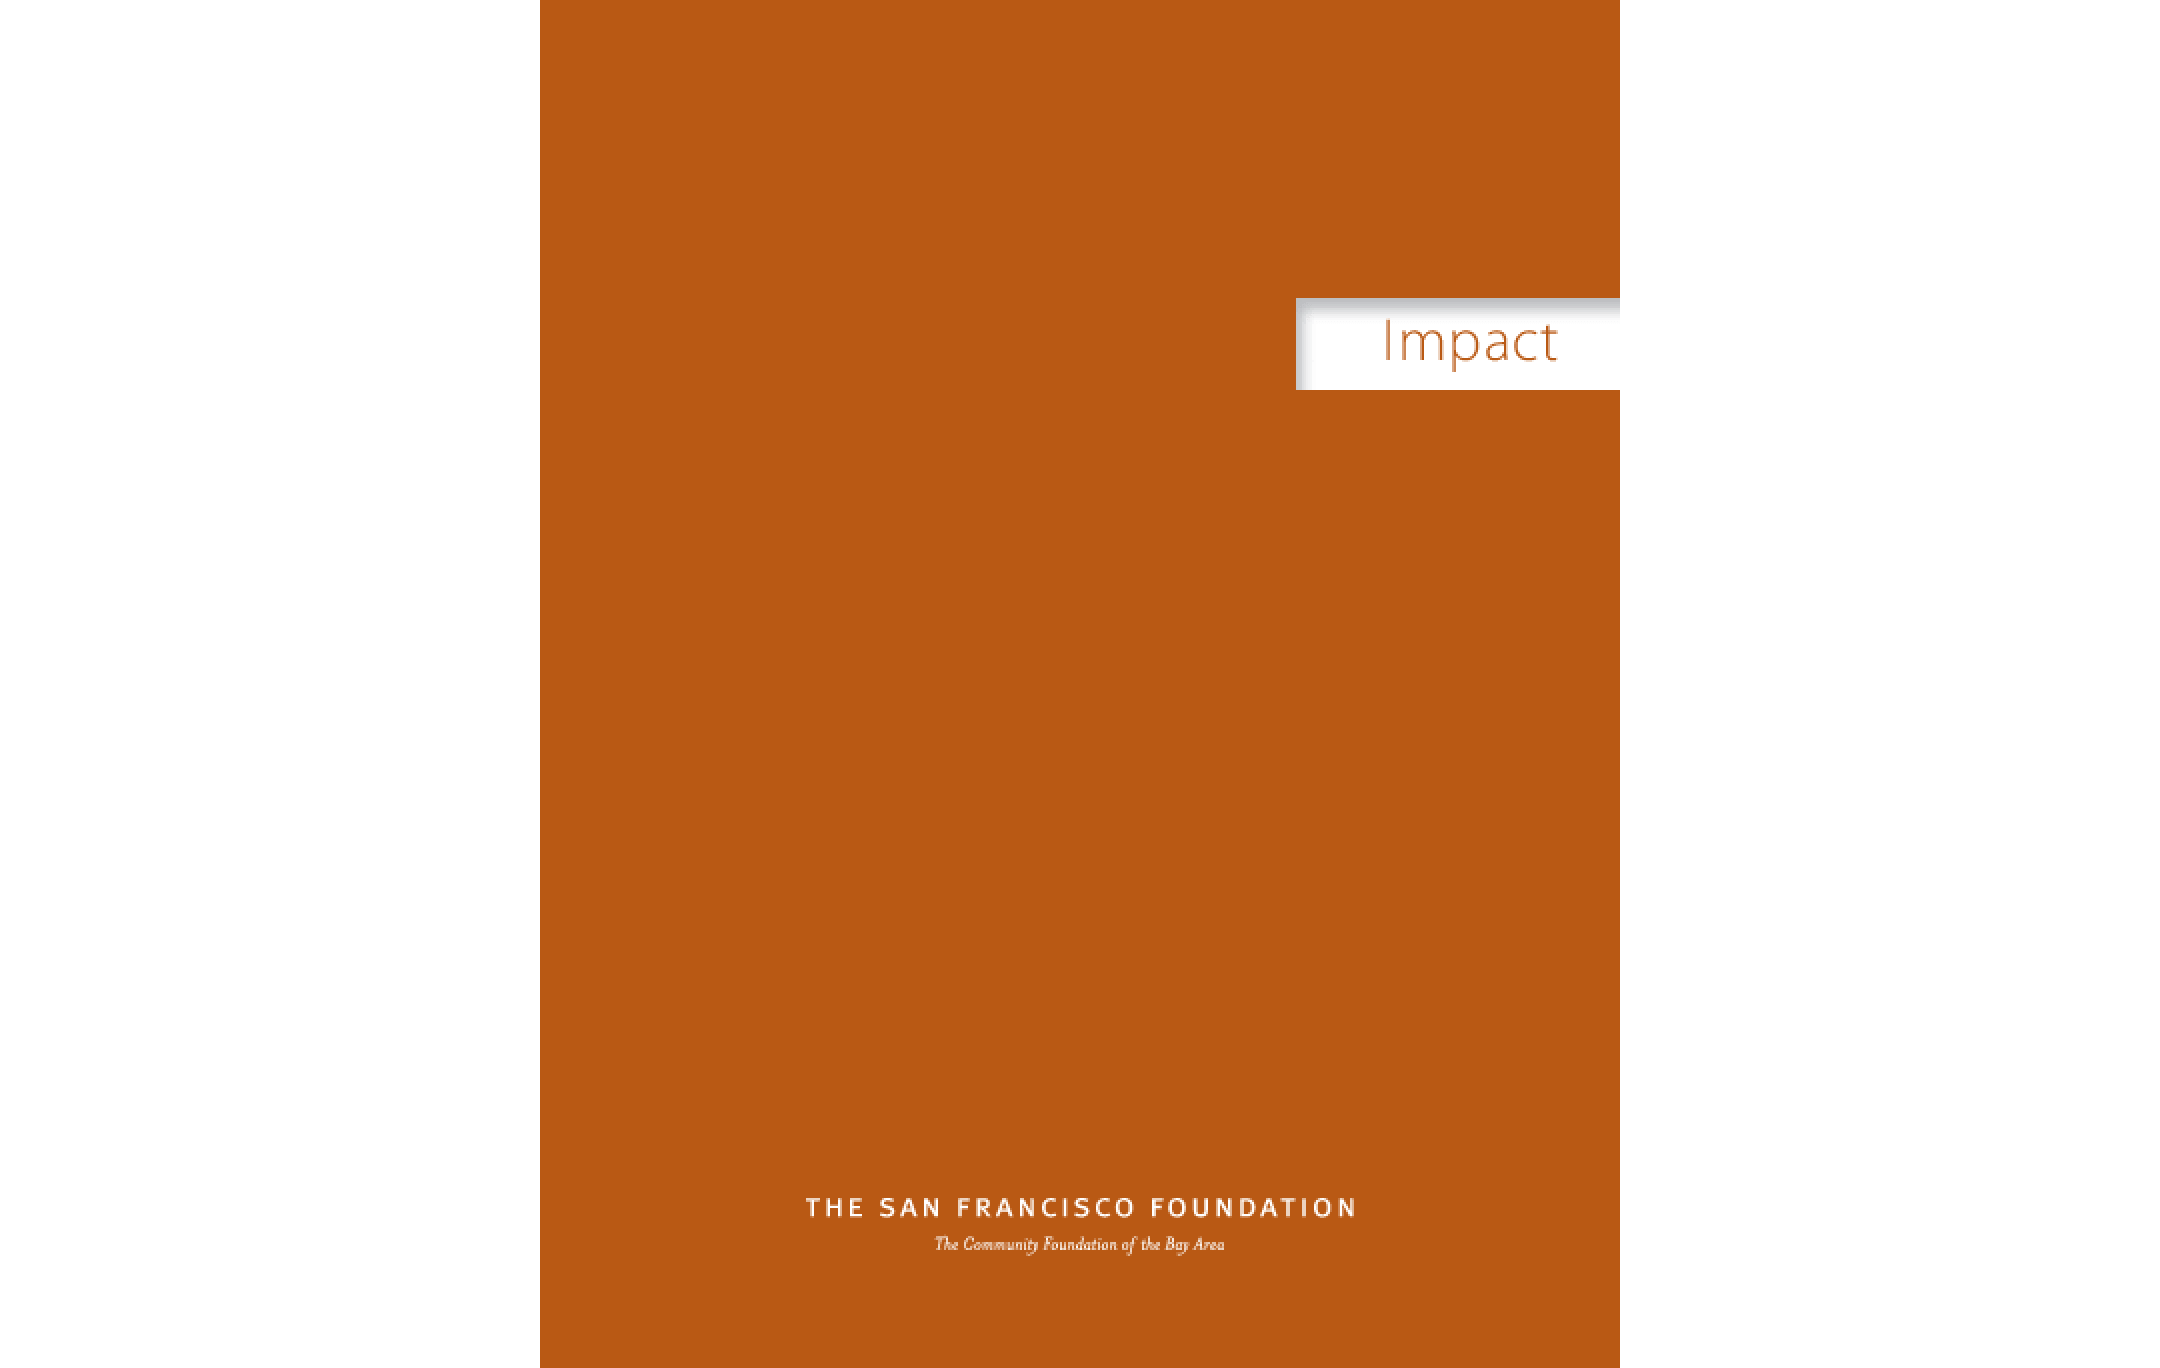 San Francisco Foundation - 2008 Annual Report: Impact